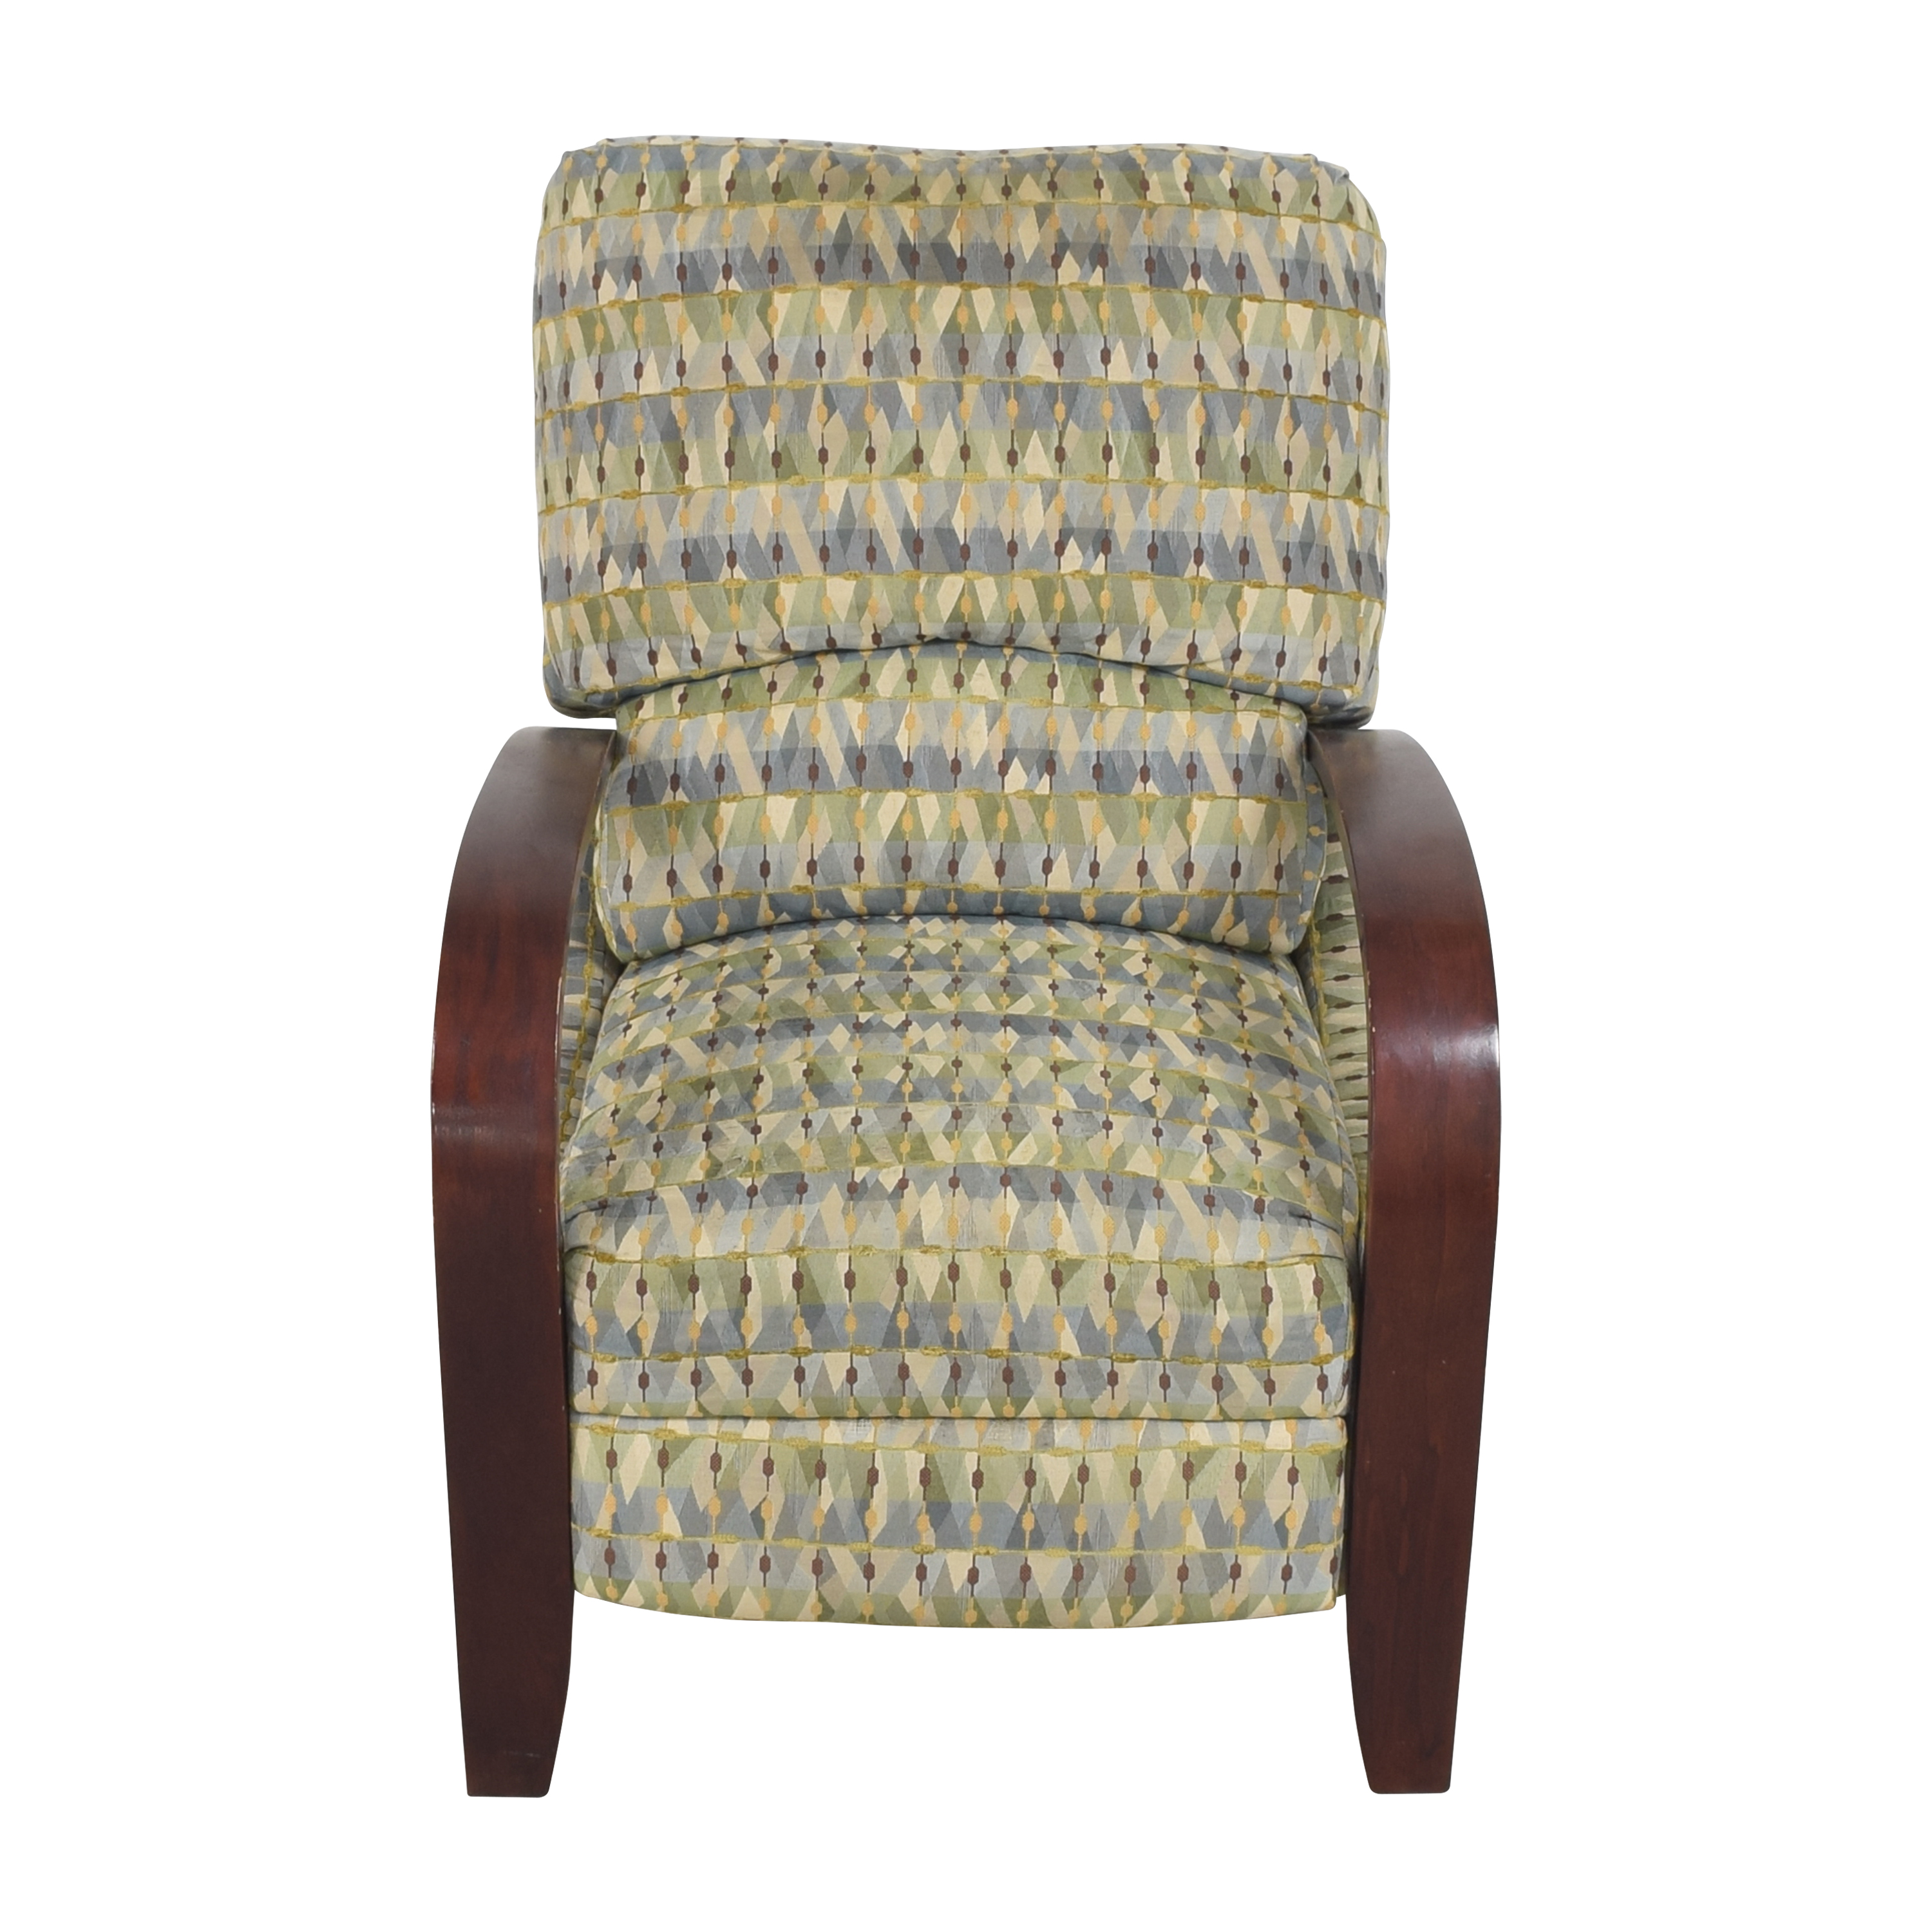 buy Raymour & Flanigan Patterned Recliner Raymour & Flanigan Chairs